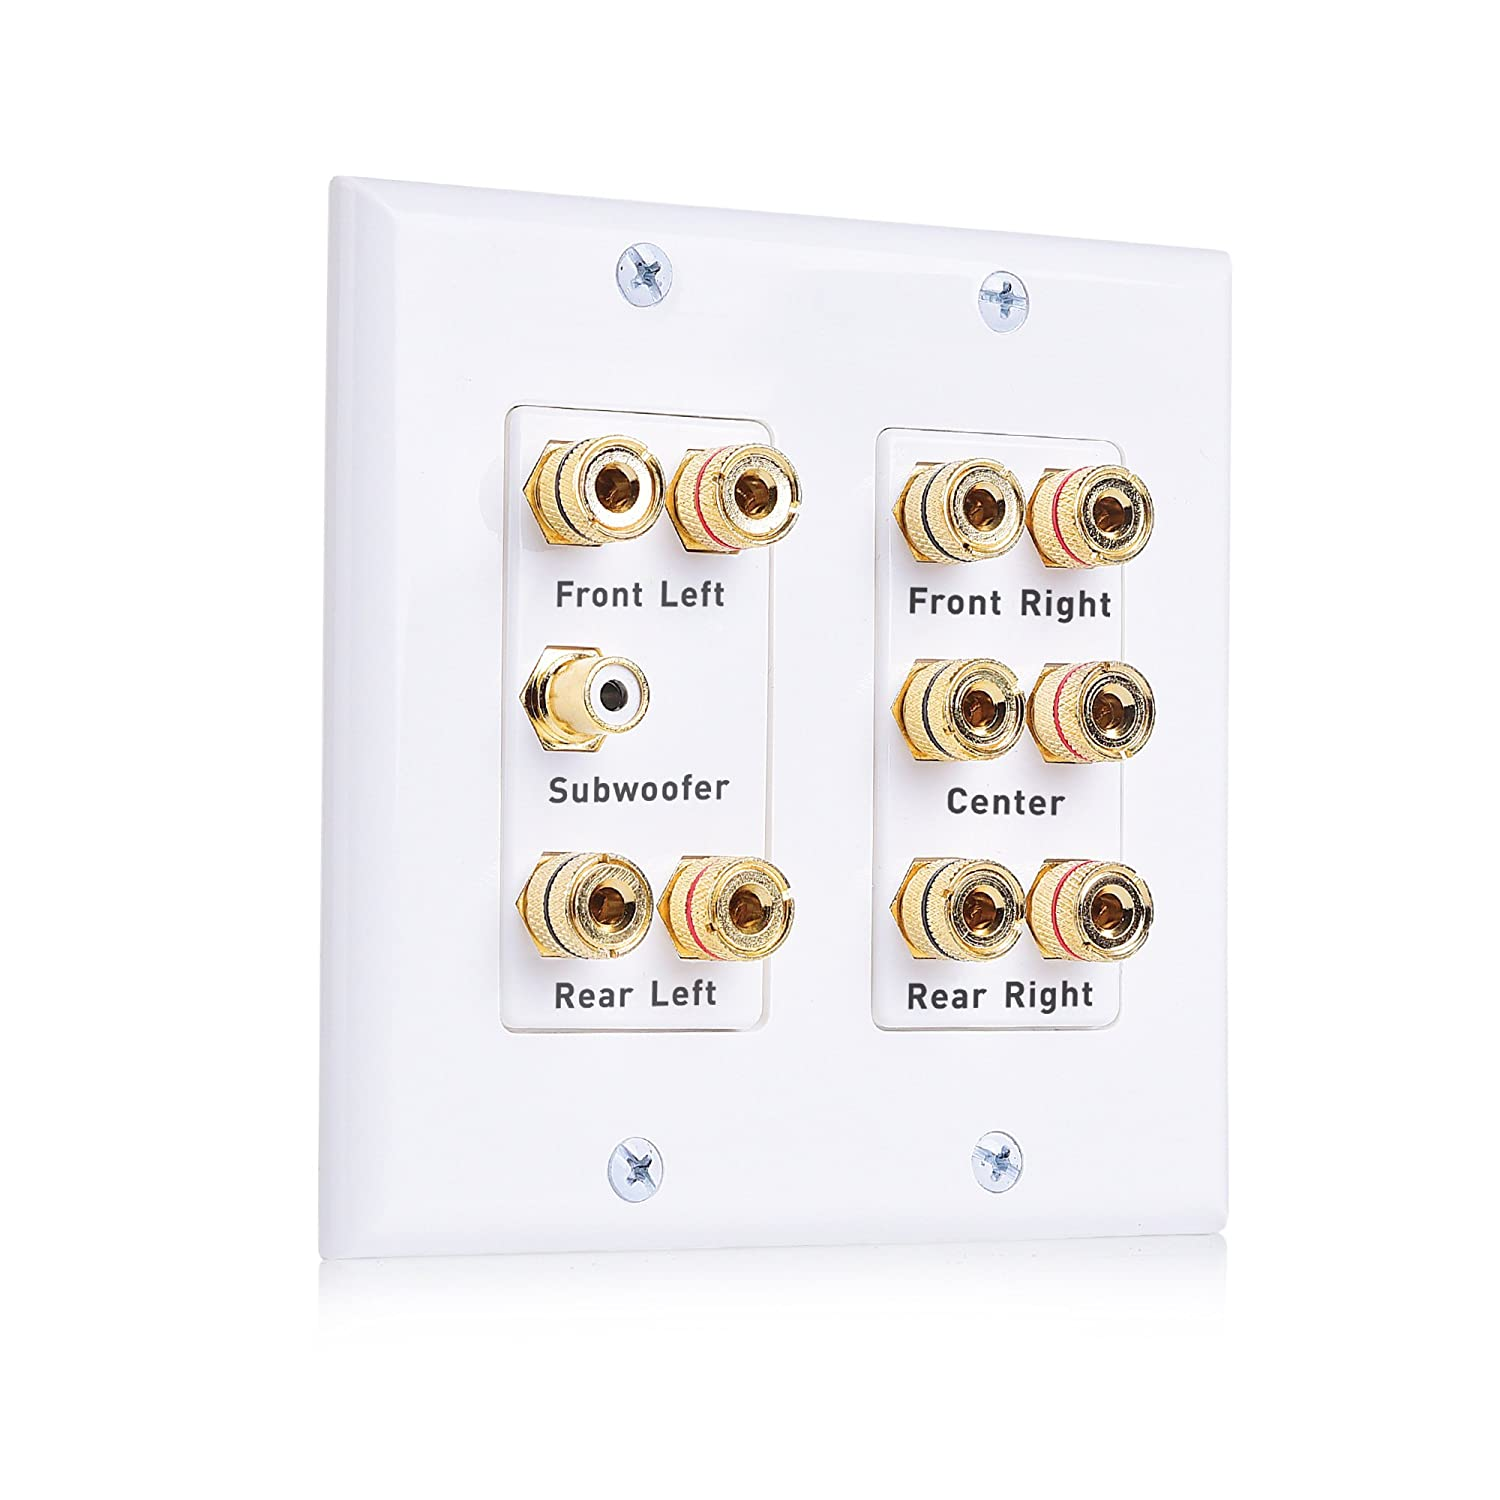 Cable Matters Double Gang 5.1 Speaker Wall Plate (Home Theater Wall Plate, Banana Plug Wall Plate) in White